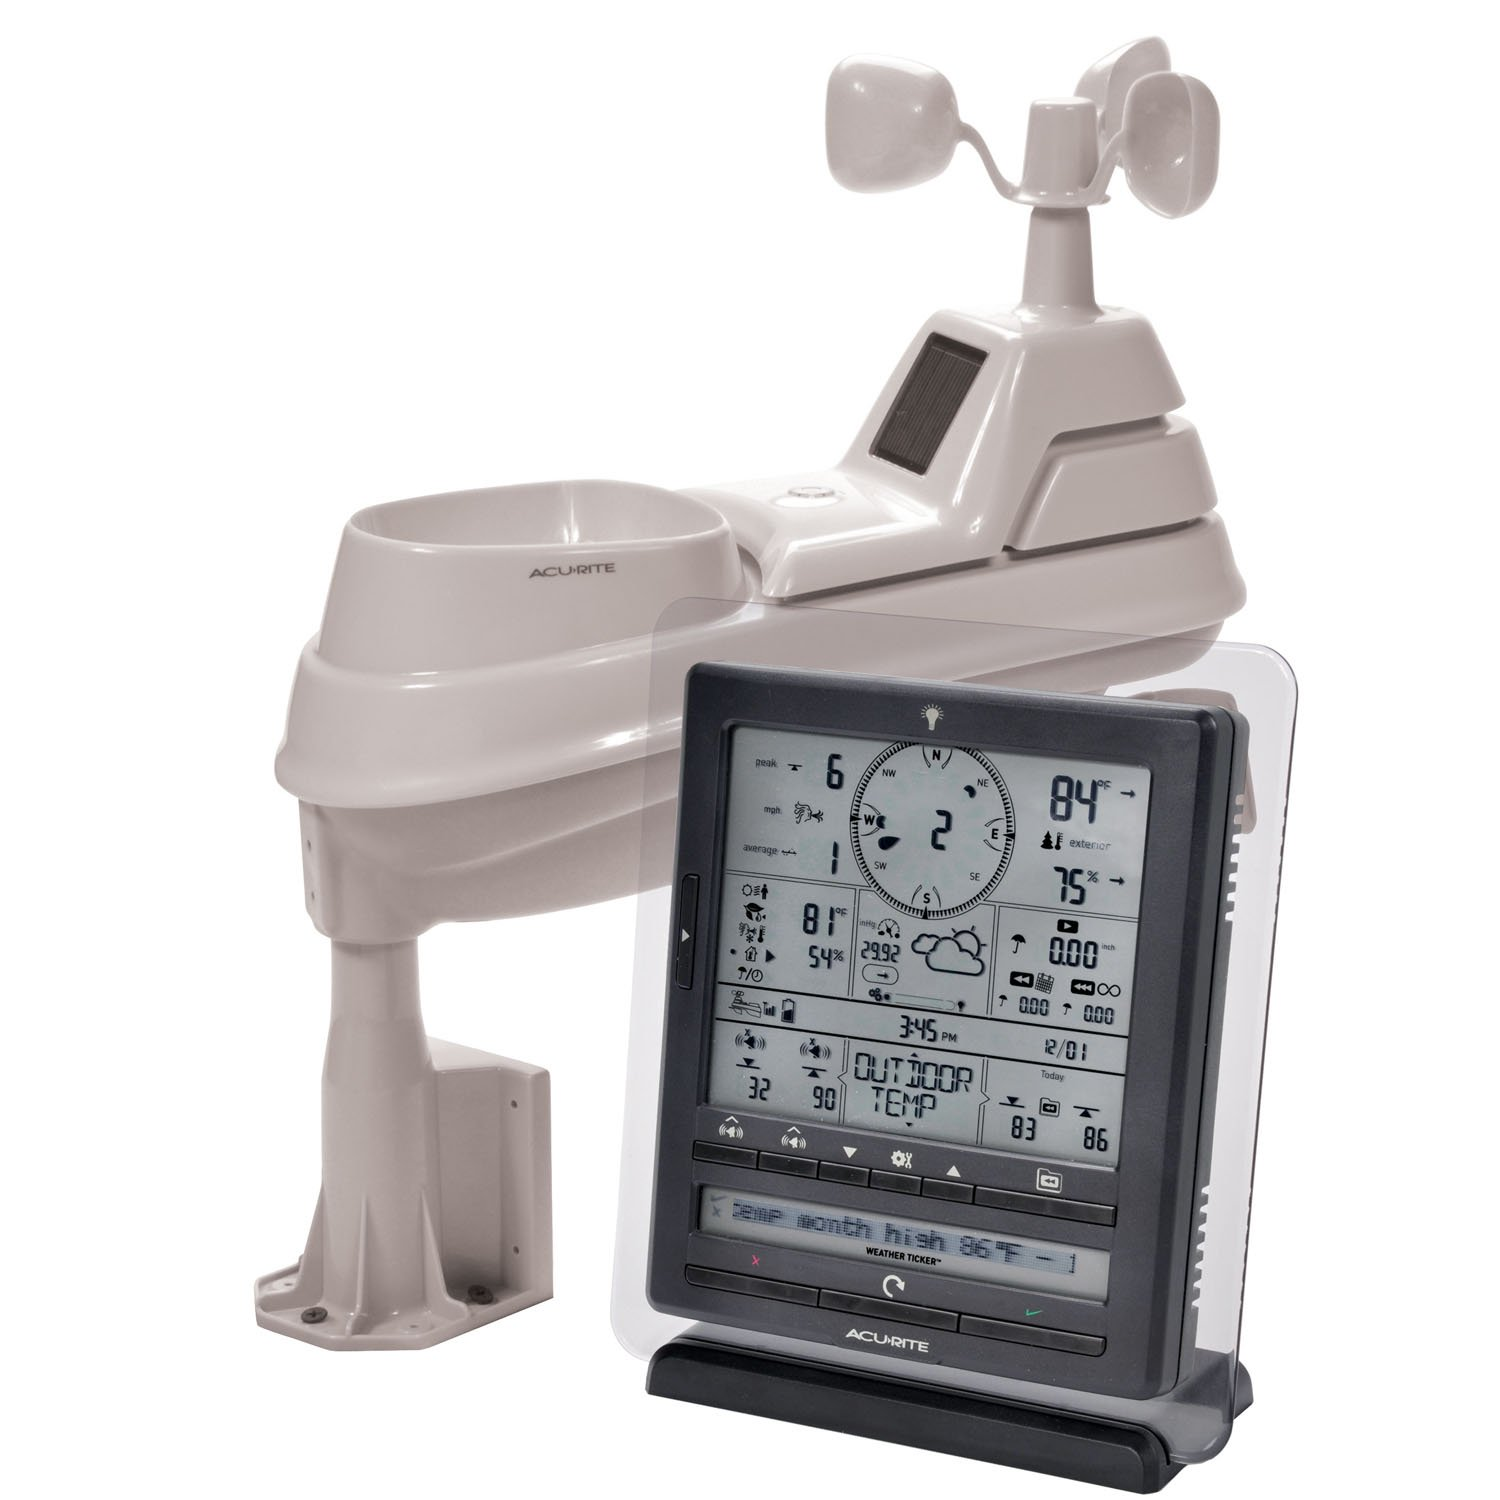 AcuRite 01035M Weather Station with PC Connect, 5-in-1 Weather Sensor and My AcuRite Remote Monitoring App